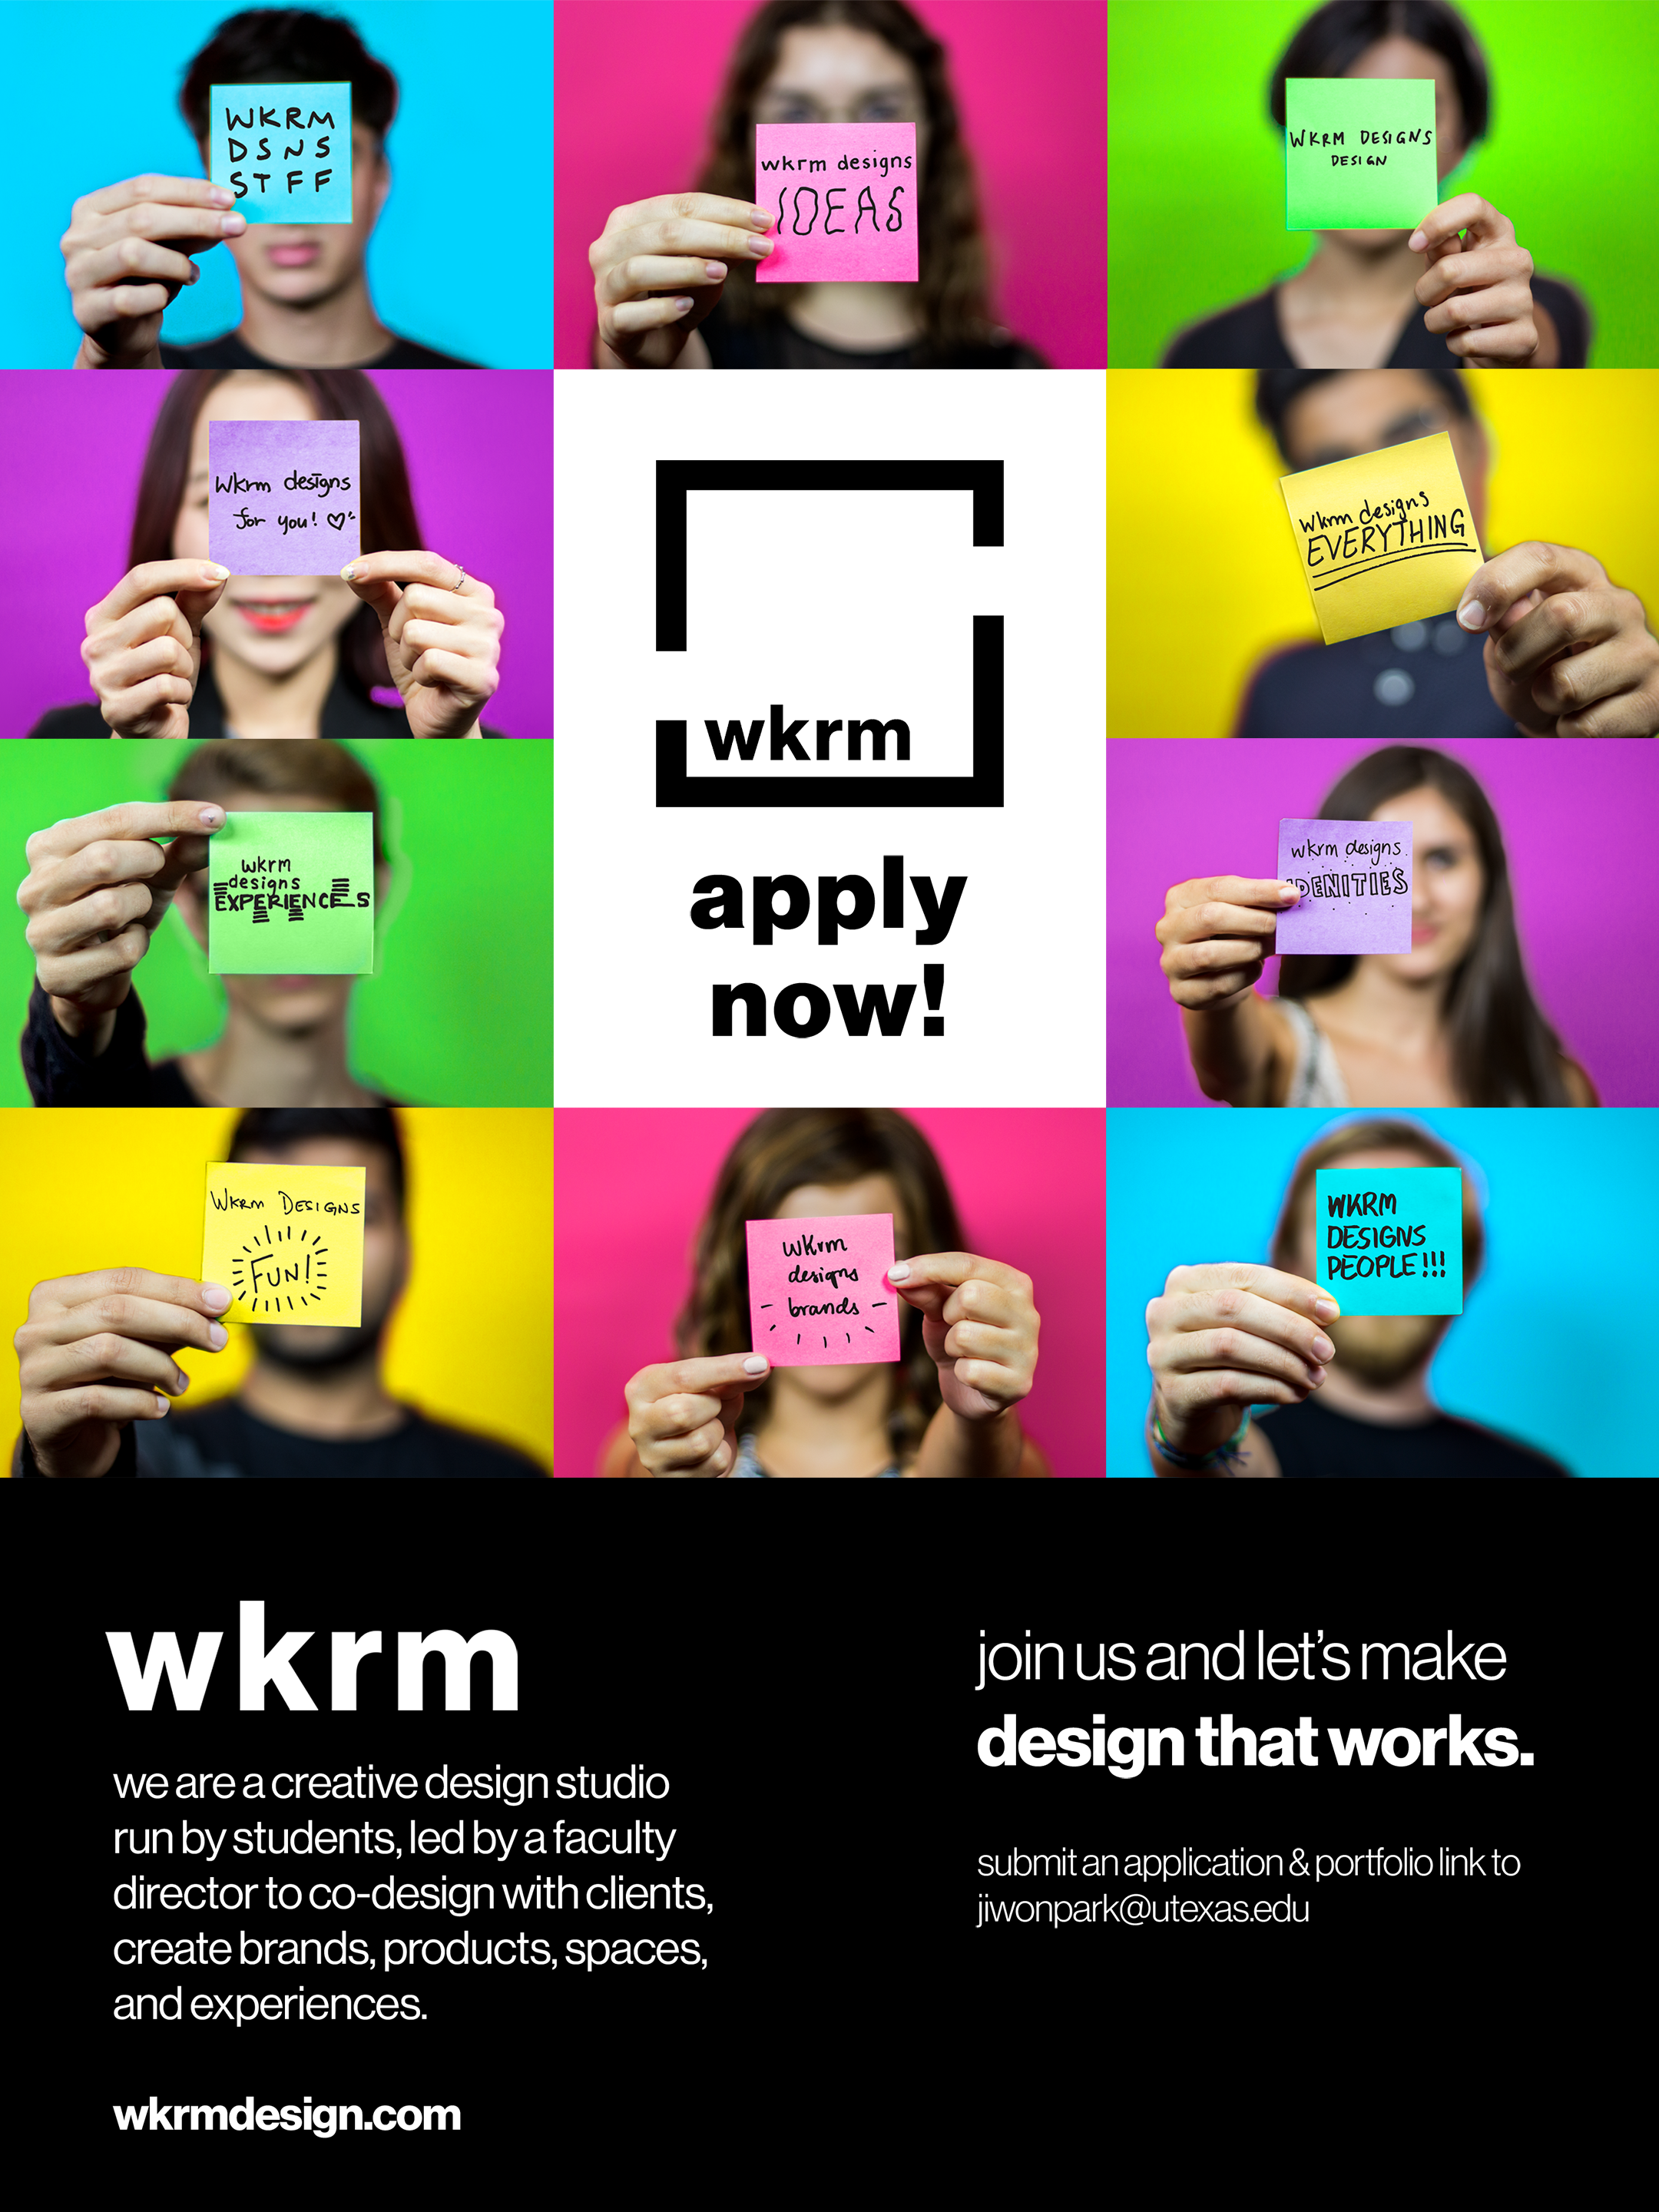 wkrm_poster_postits (2).png